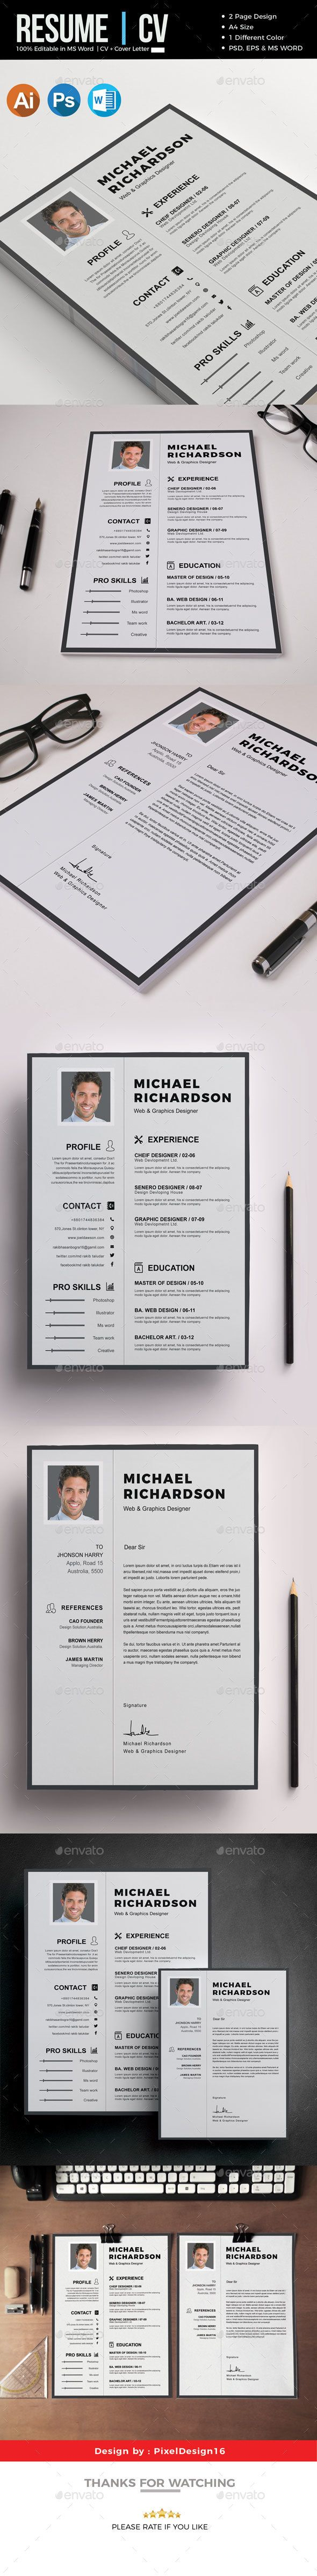 Resume CV 19 best Resume images